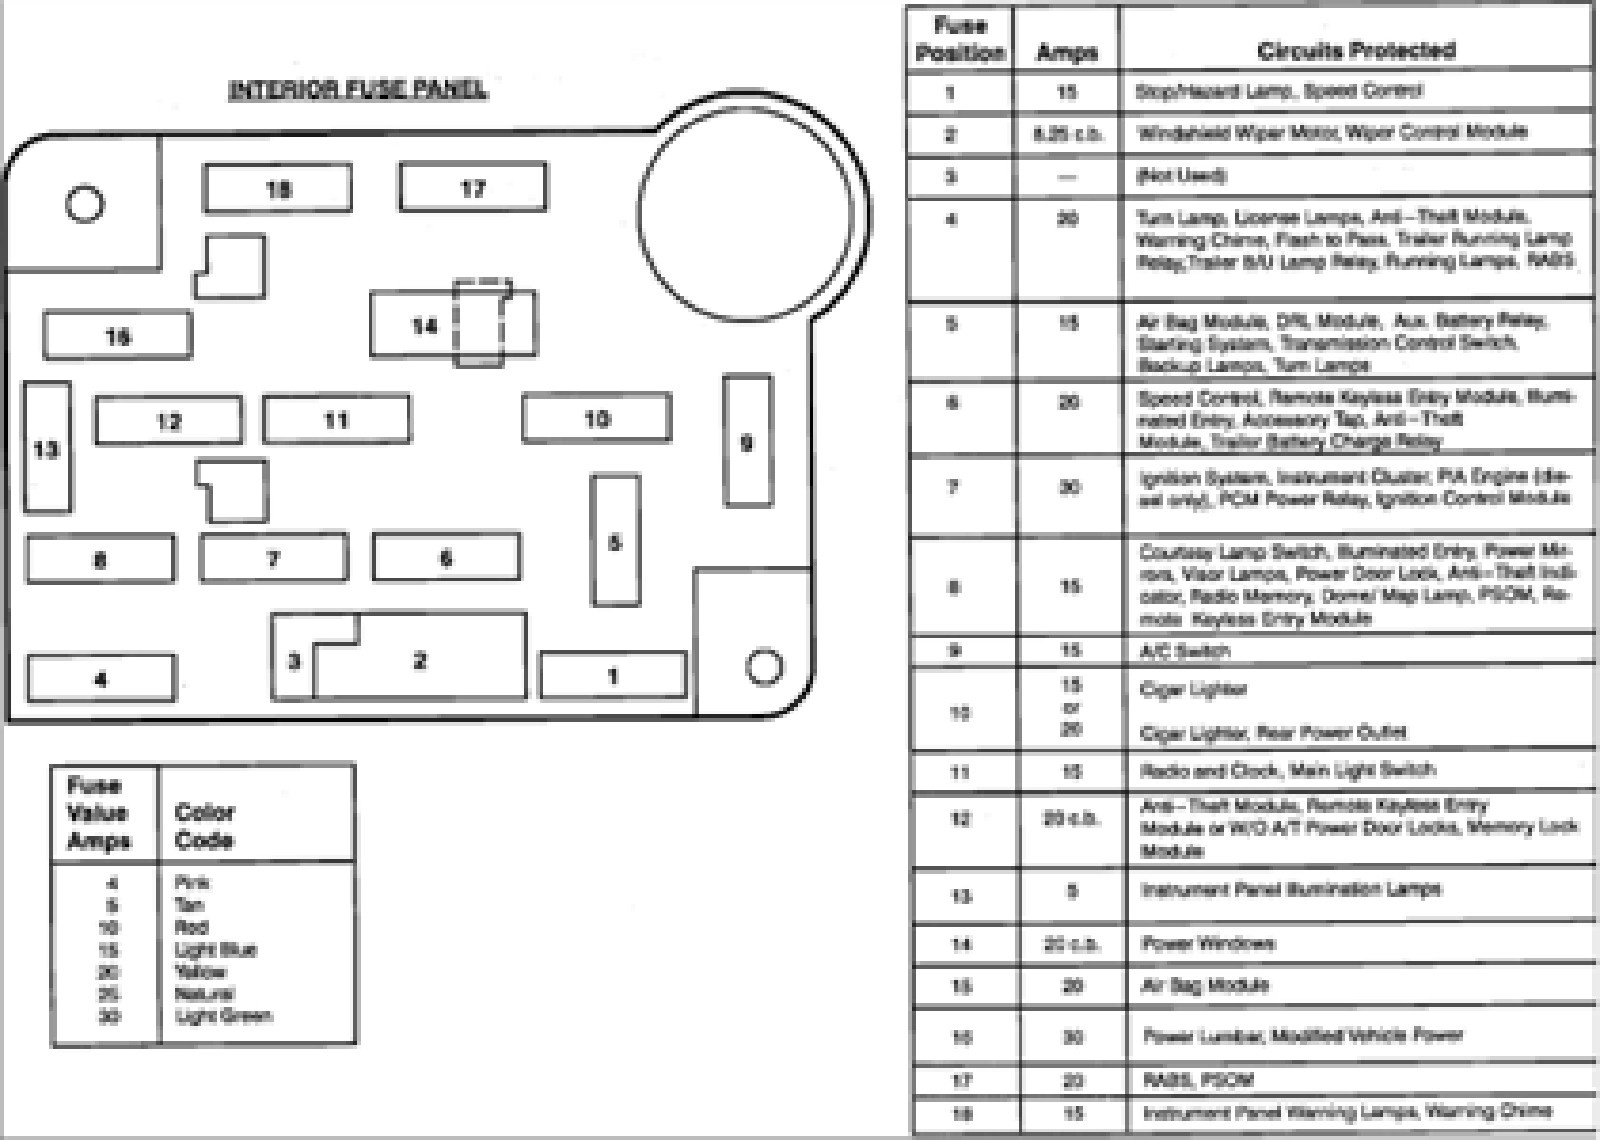 pic 8862473225641007897 1600x1200 93 ranger fuse box diagram 1994 ford ranger fuse box location fuse box diagram 1991 ford f150 pickup at fashall.co